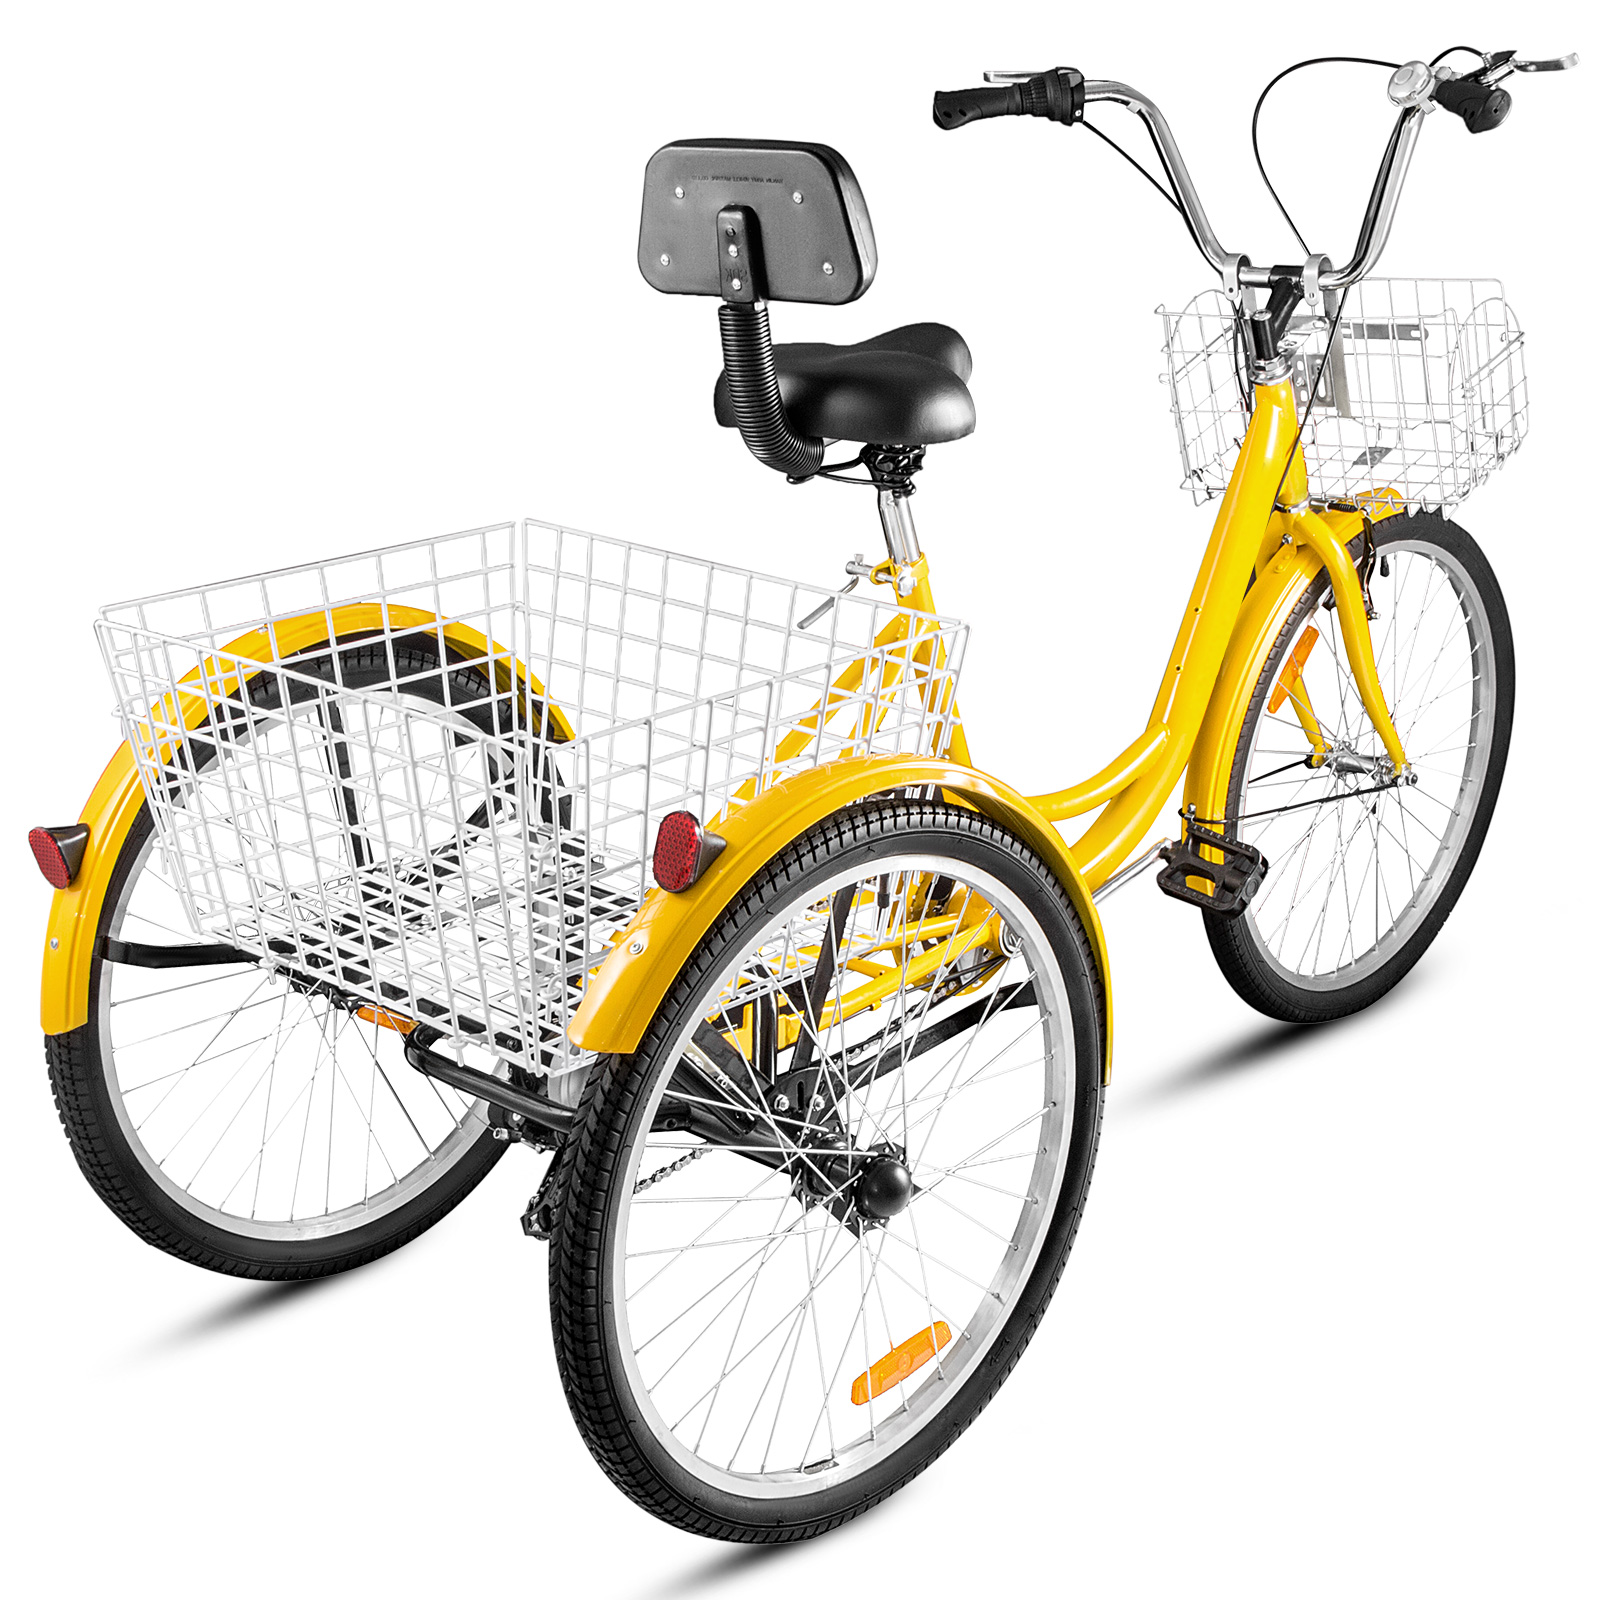 20-24-26-034-Adult-Tricycle-1-7-Speed-3-Wheel-For-Shopping-W-Installation-Tools miniature 383